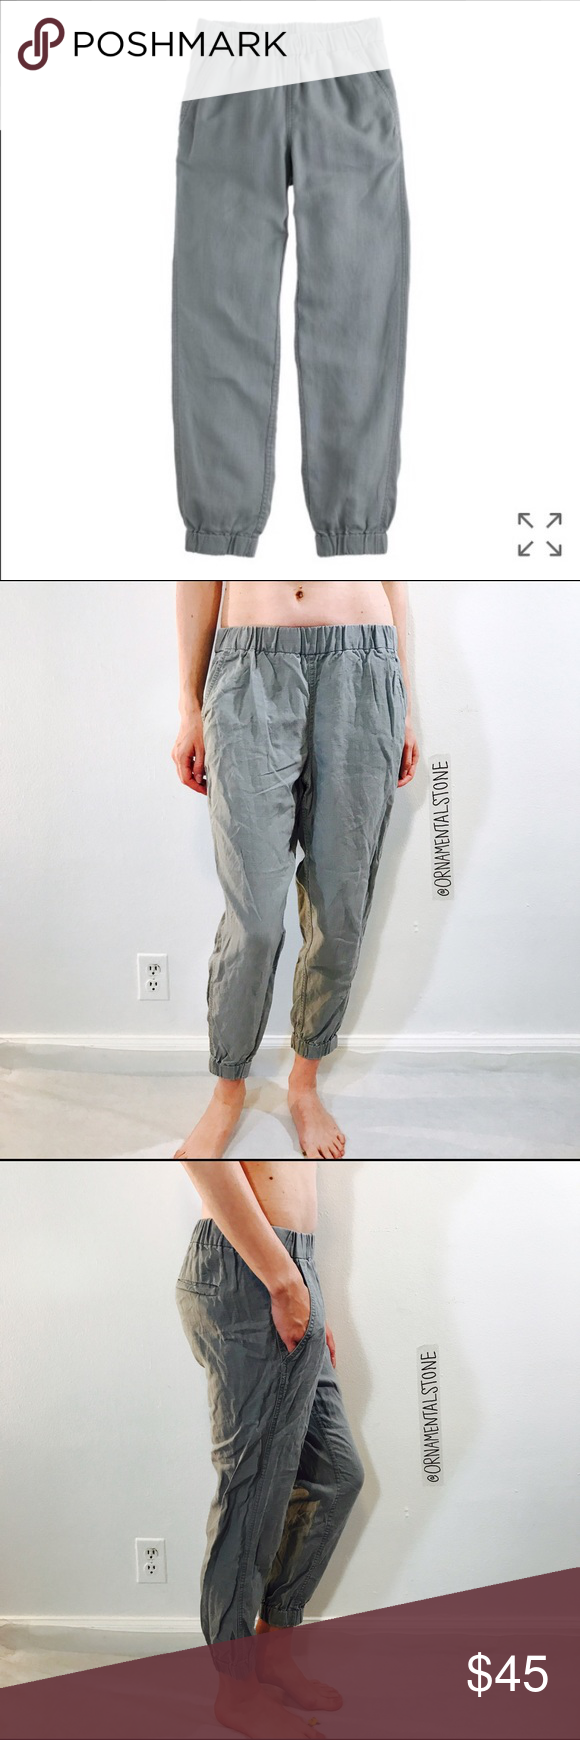 """J. CREW SEASIDE JOGGER STYLE PANT FISHERMANS GRAY EUC, no issues. Sits lower on hip. Easy through hip and thigh with a straight leg. 25 1/2"""" inseam. Your favorite laid-back style from last summer, now in an authentic ikat print from Bhoodan Pochampally, where local artisans create prints for Indian royalty, Bollywood stars-and now us.  Cotton. Elastic waist. Cuffed. Machine wash. Import. J. Crew Pants"""